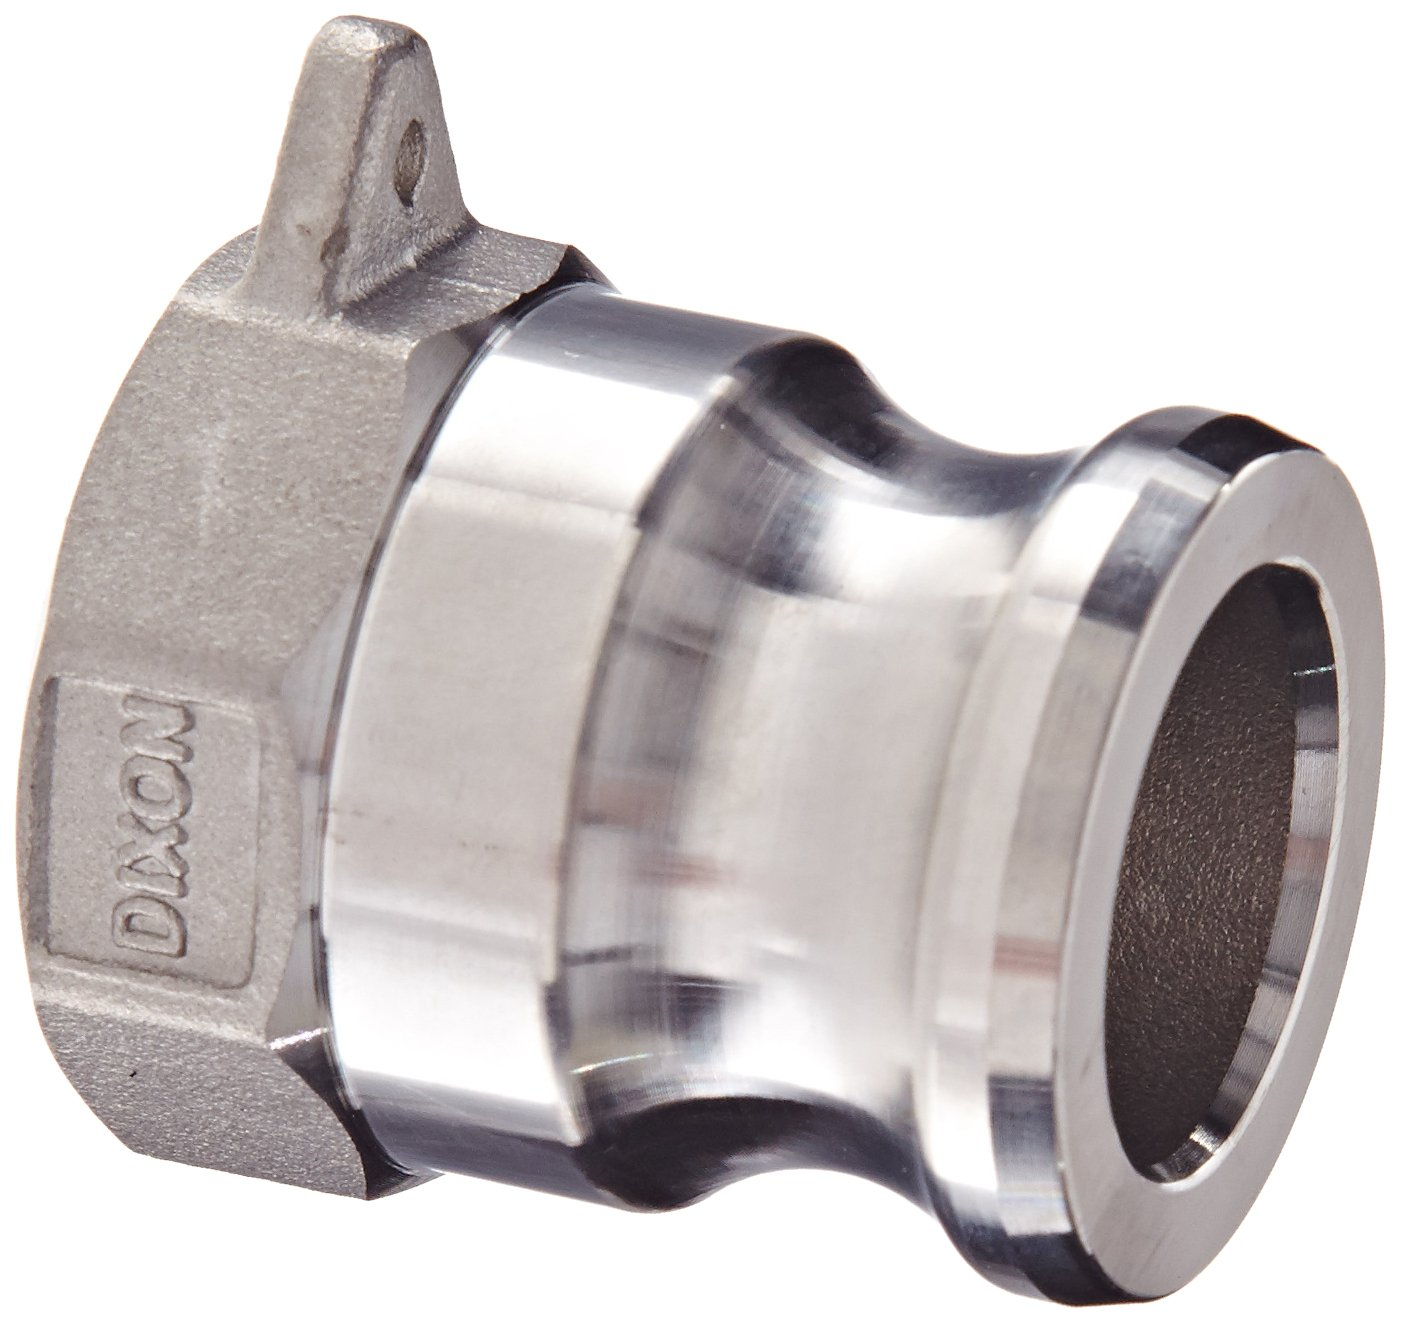 3//4 Plug x 3//4 NPT Male Dixon Valve /& Coupling G75-F-SS Investment Cast Stainless Steel 316 Global Type F Cam and Groove Hose Fitting